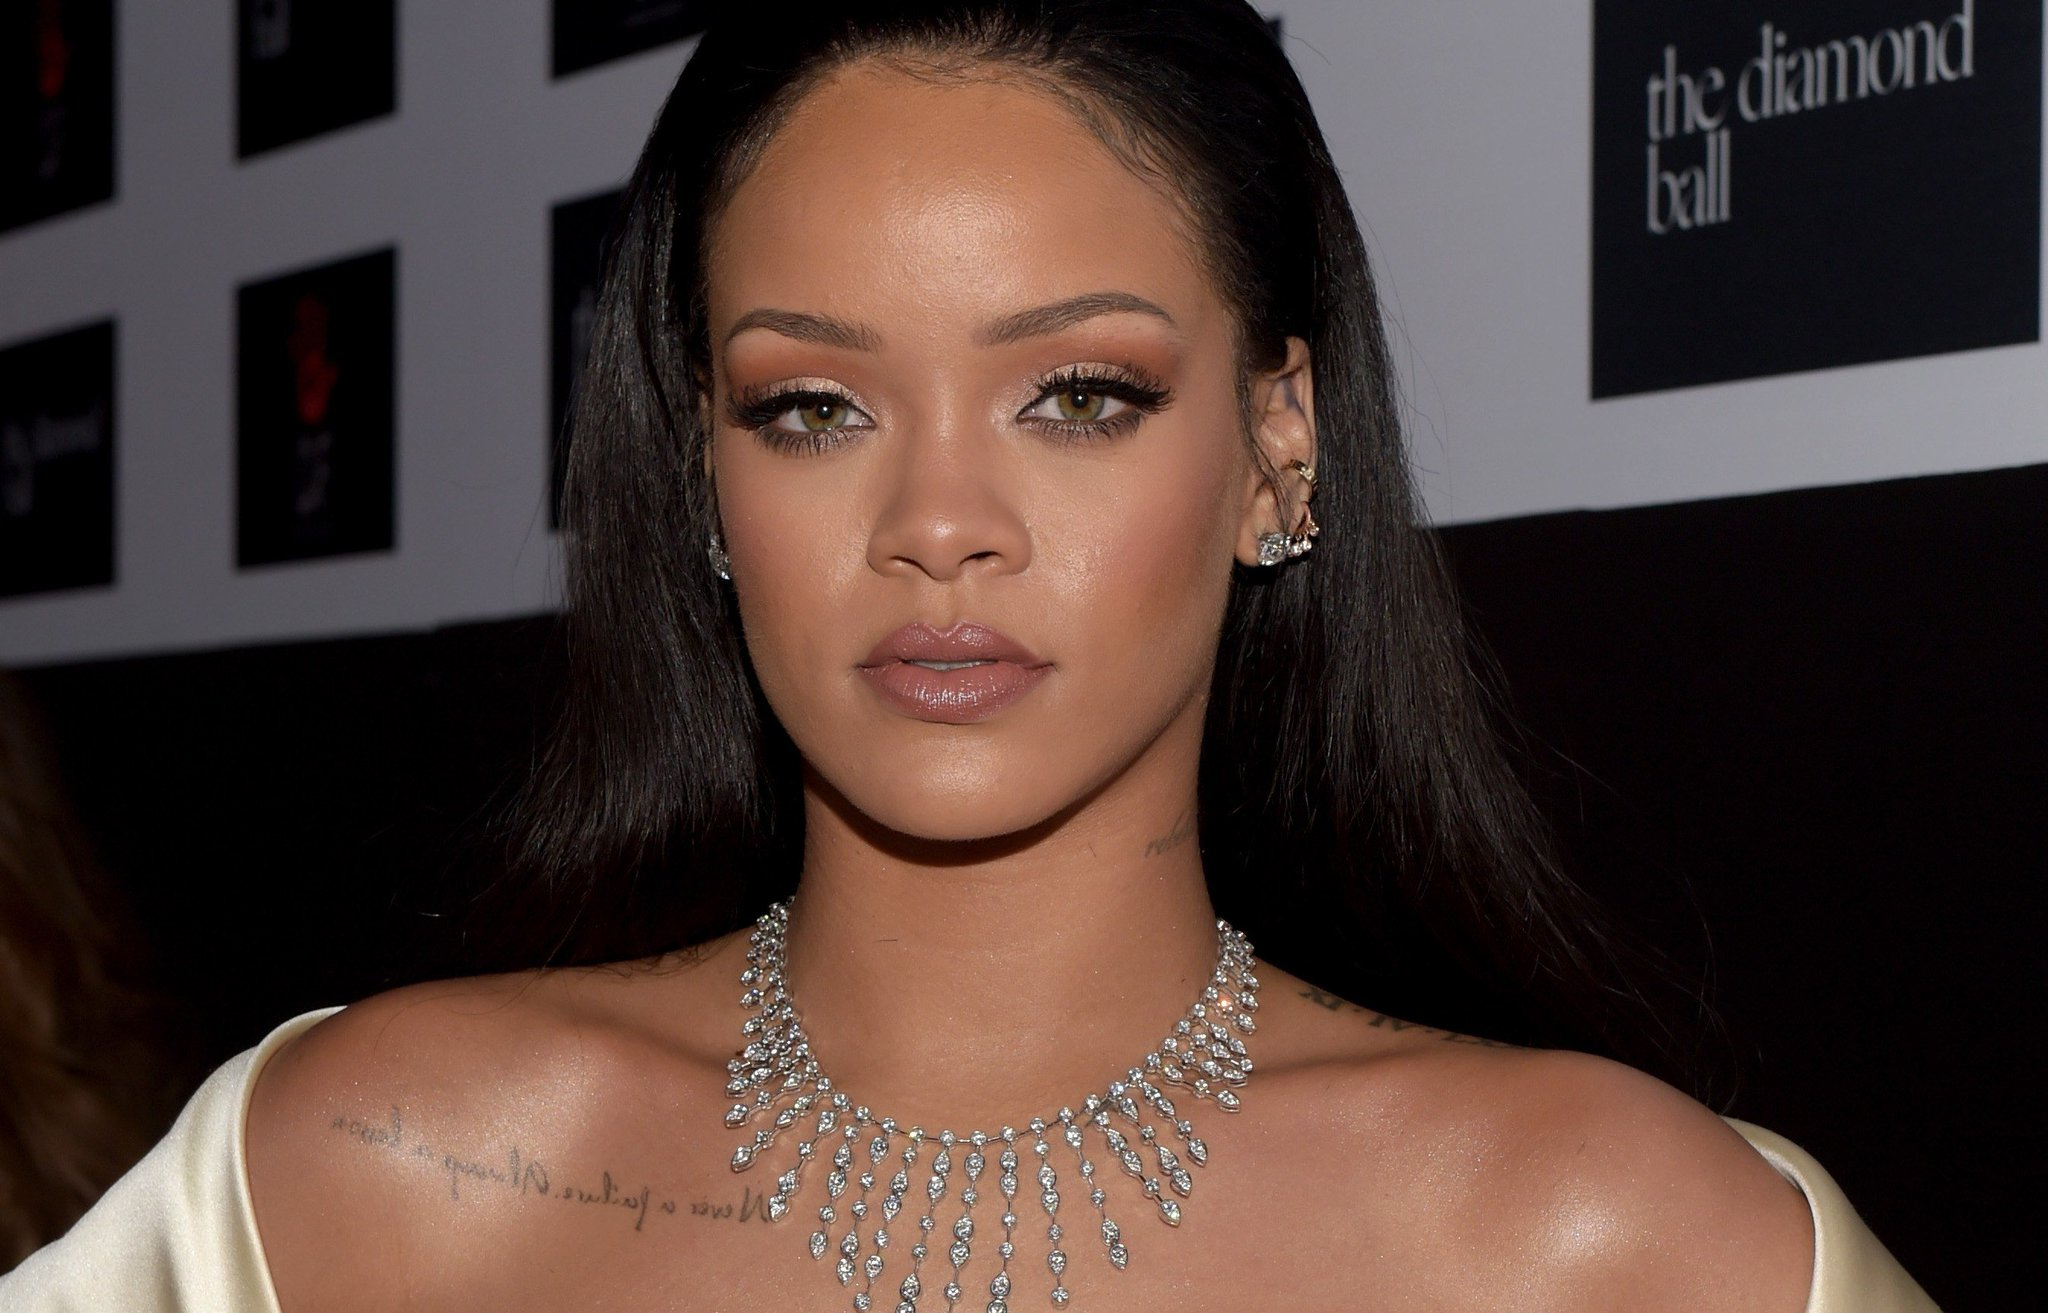 Rihanna just wore a pink bra as a shirt—and it obviously looks amazing: https://t.co/mEyrZt9qpe https://t.co/gaUqXk0vIZ